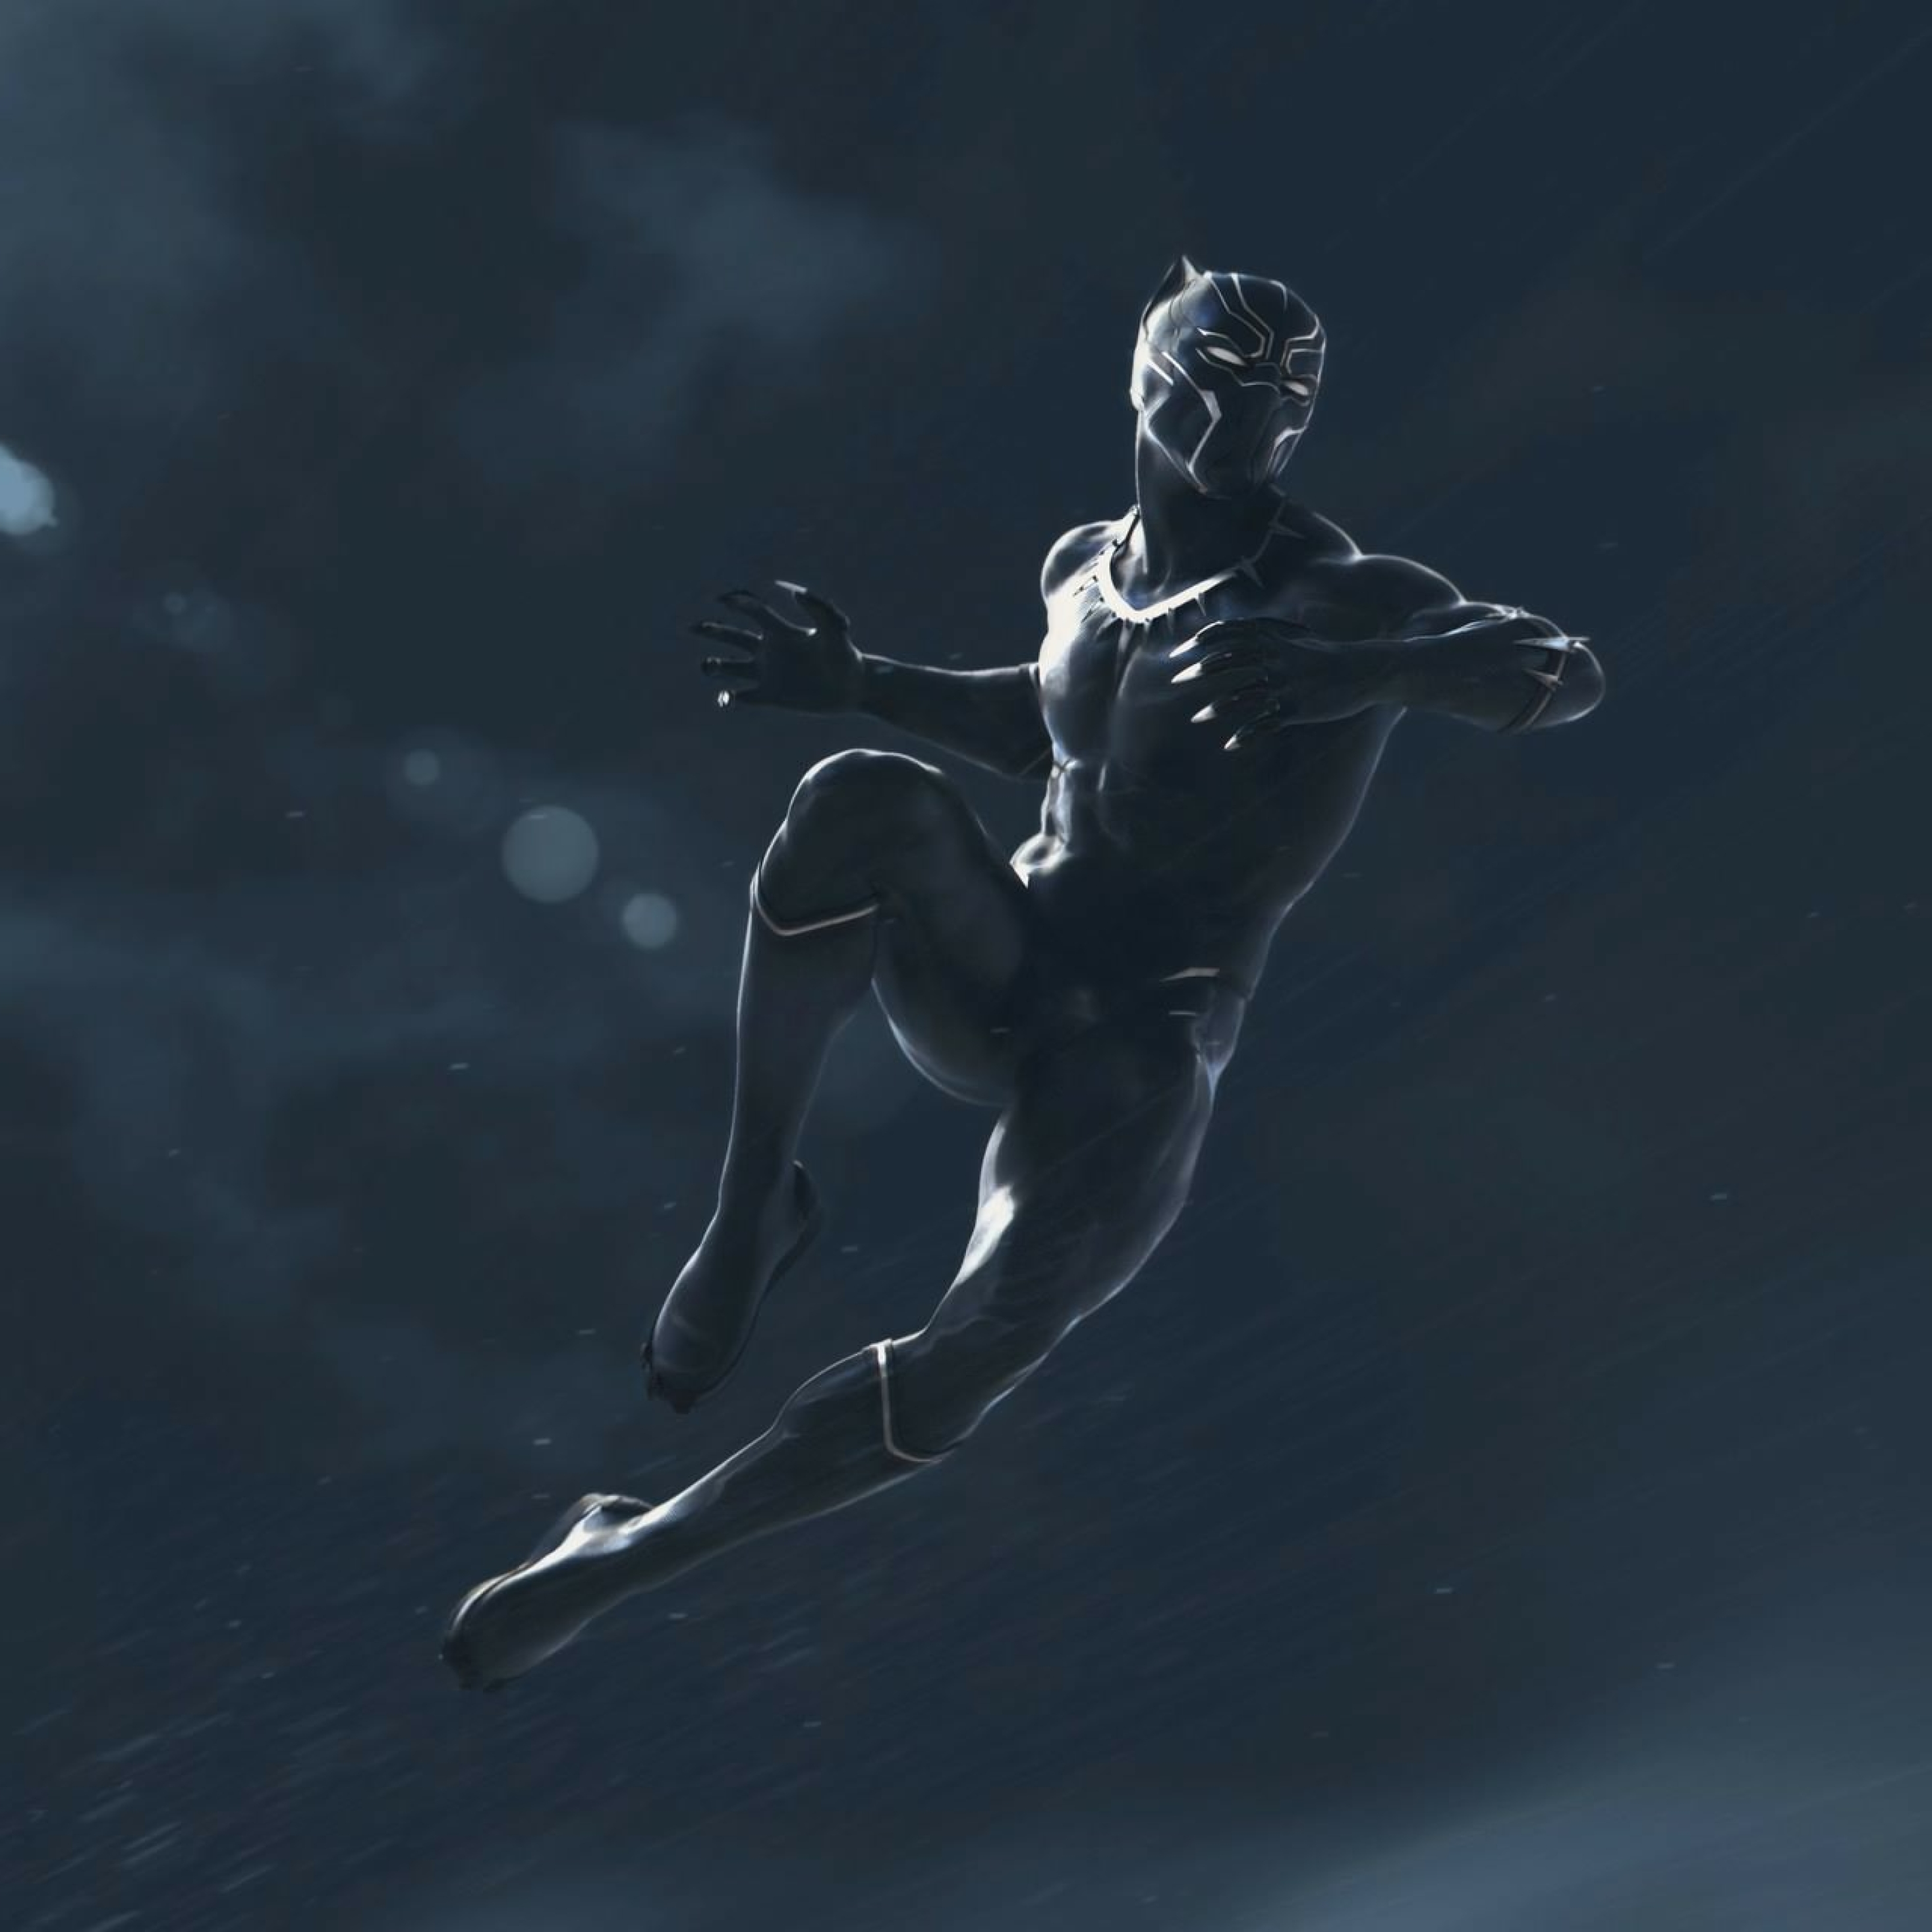 Black Panther Marvel Movie, Full HD Wallpaper